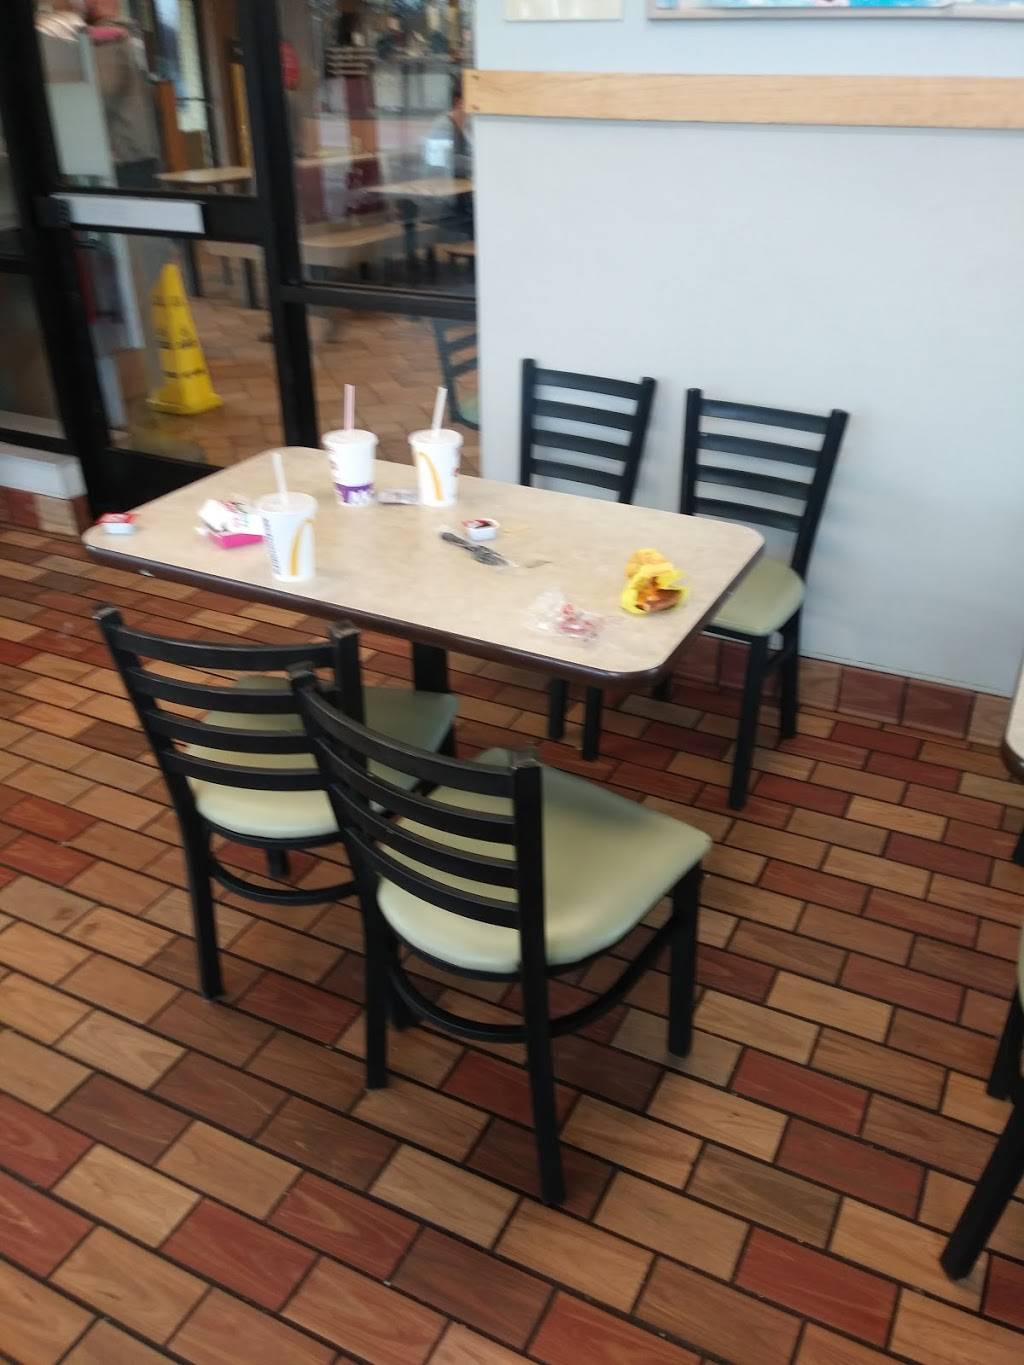 McDonalds   cafe   3021 Southeastern Ave, Indianapolis, IN 46203, USA   3176313484 OR +1 317-631-3484